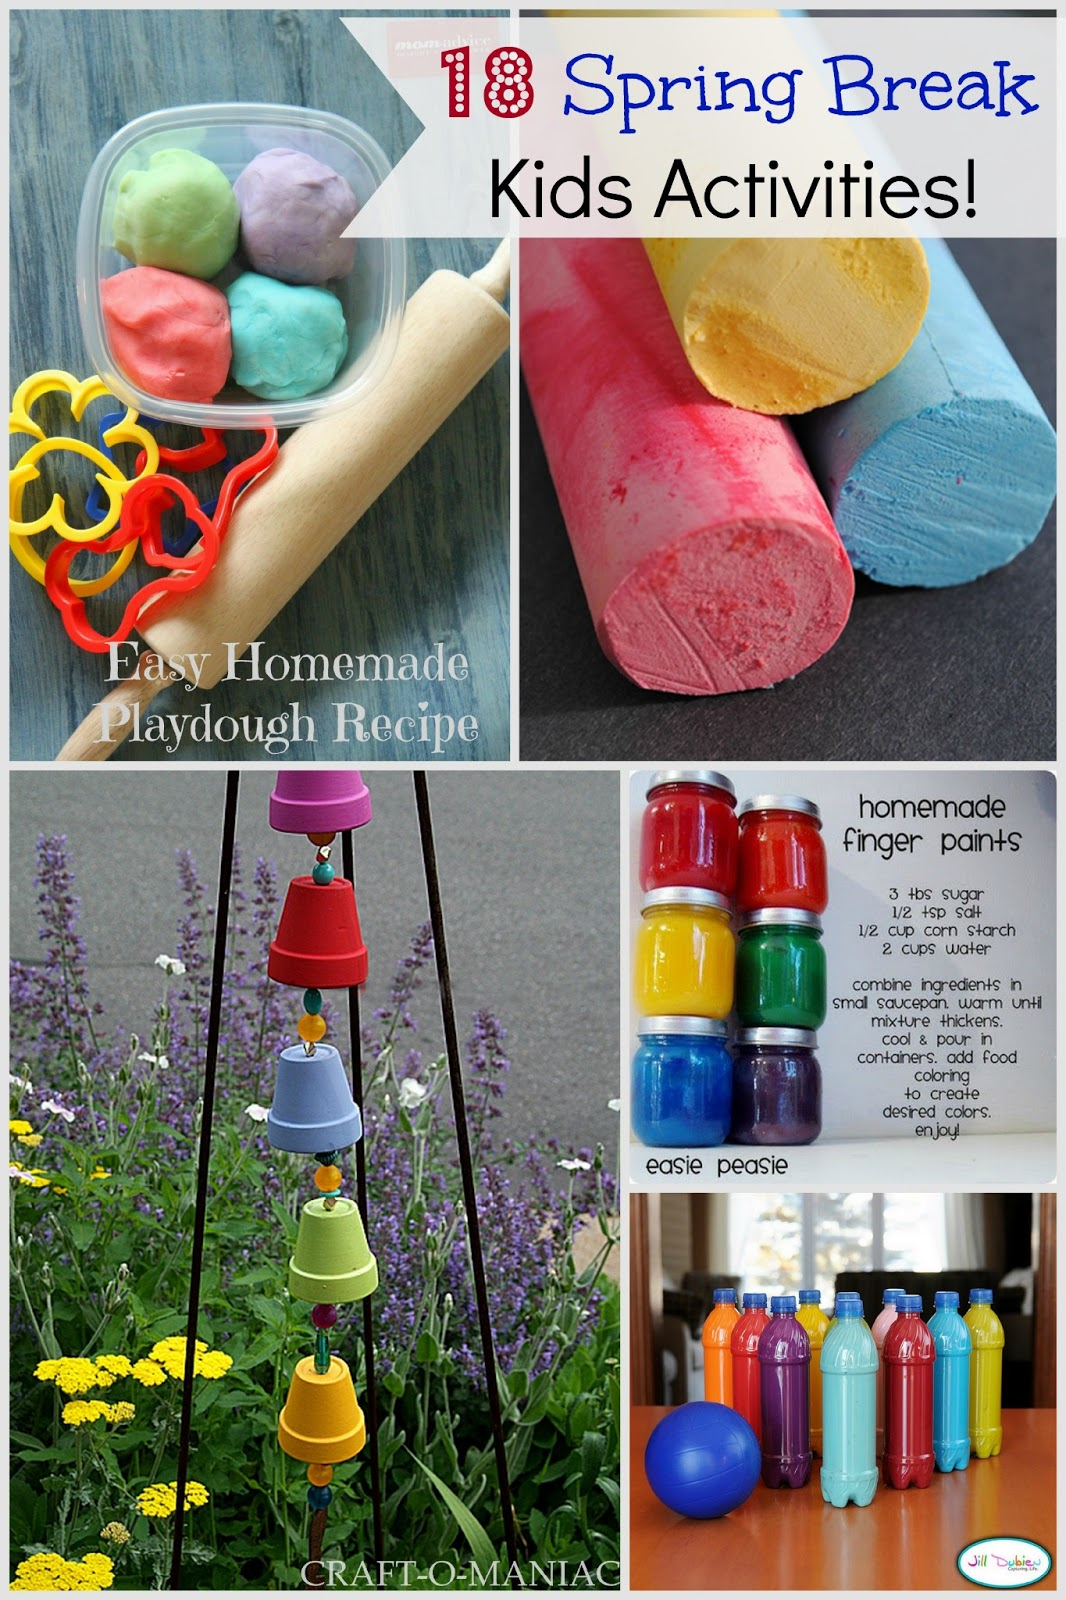 18 spring break kids activities - craft-o-maniac